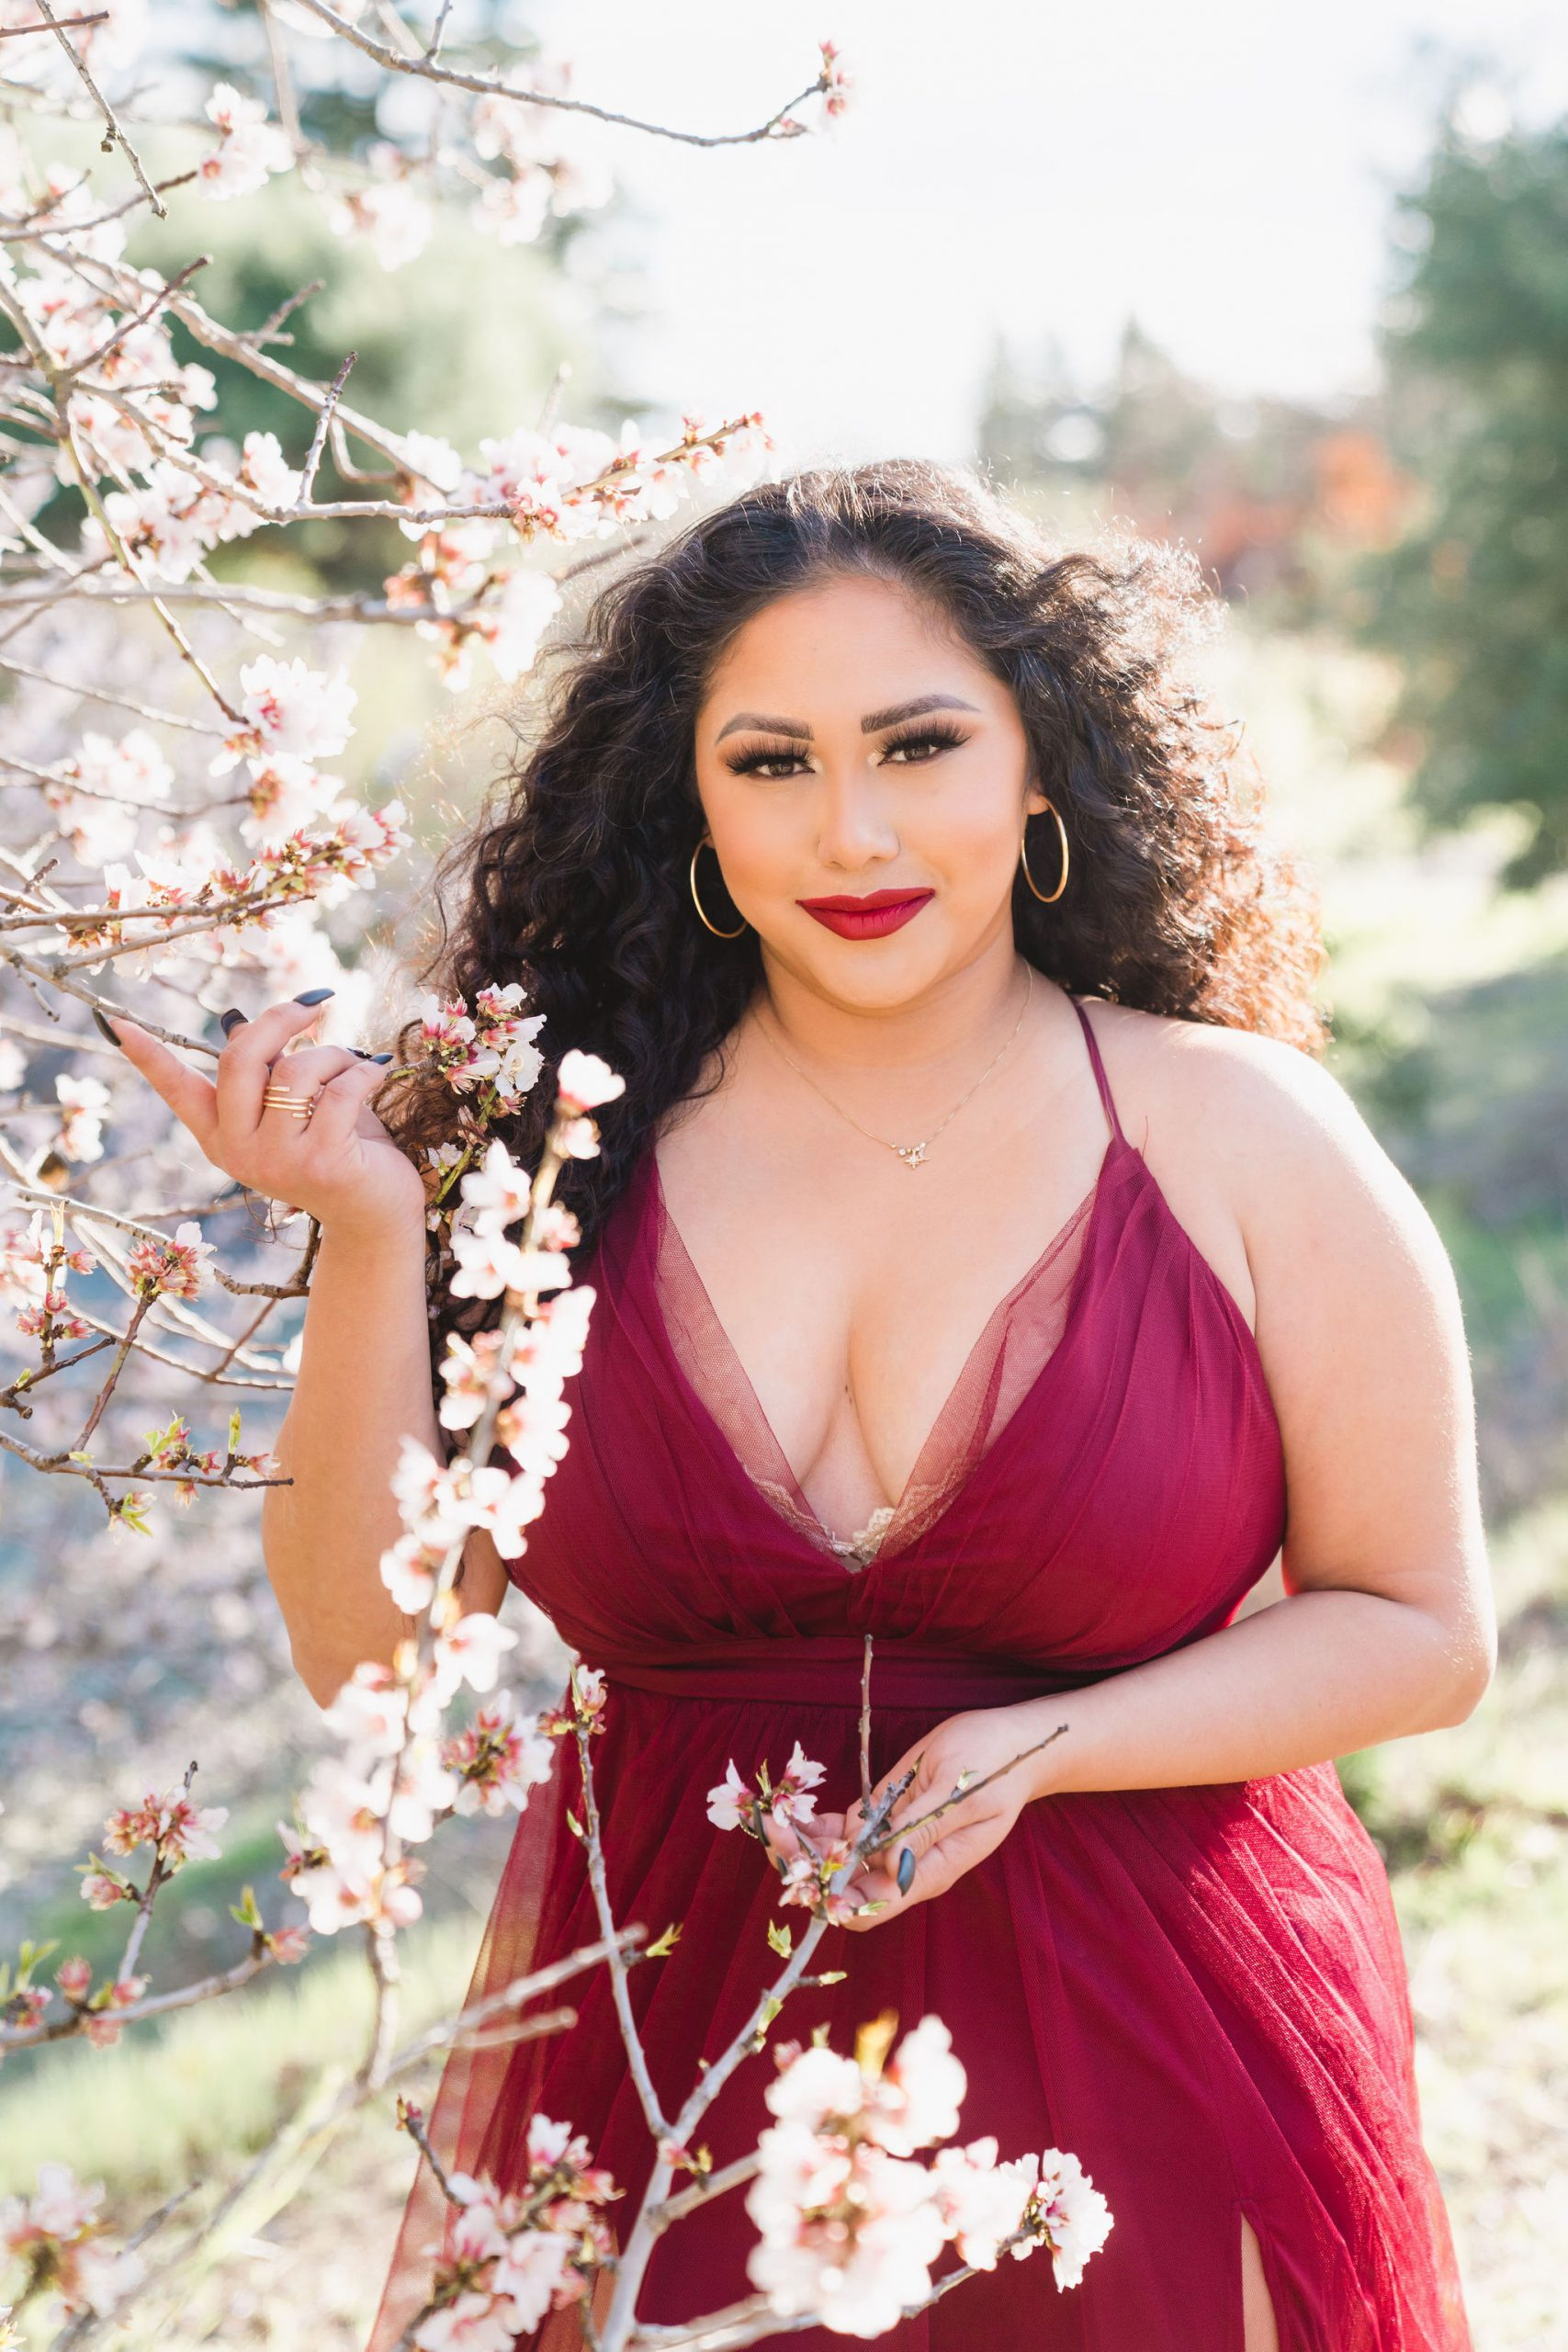 woman in red dress holding cherry blossoms in san jose